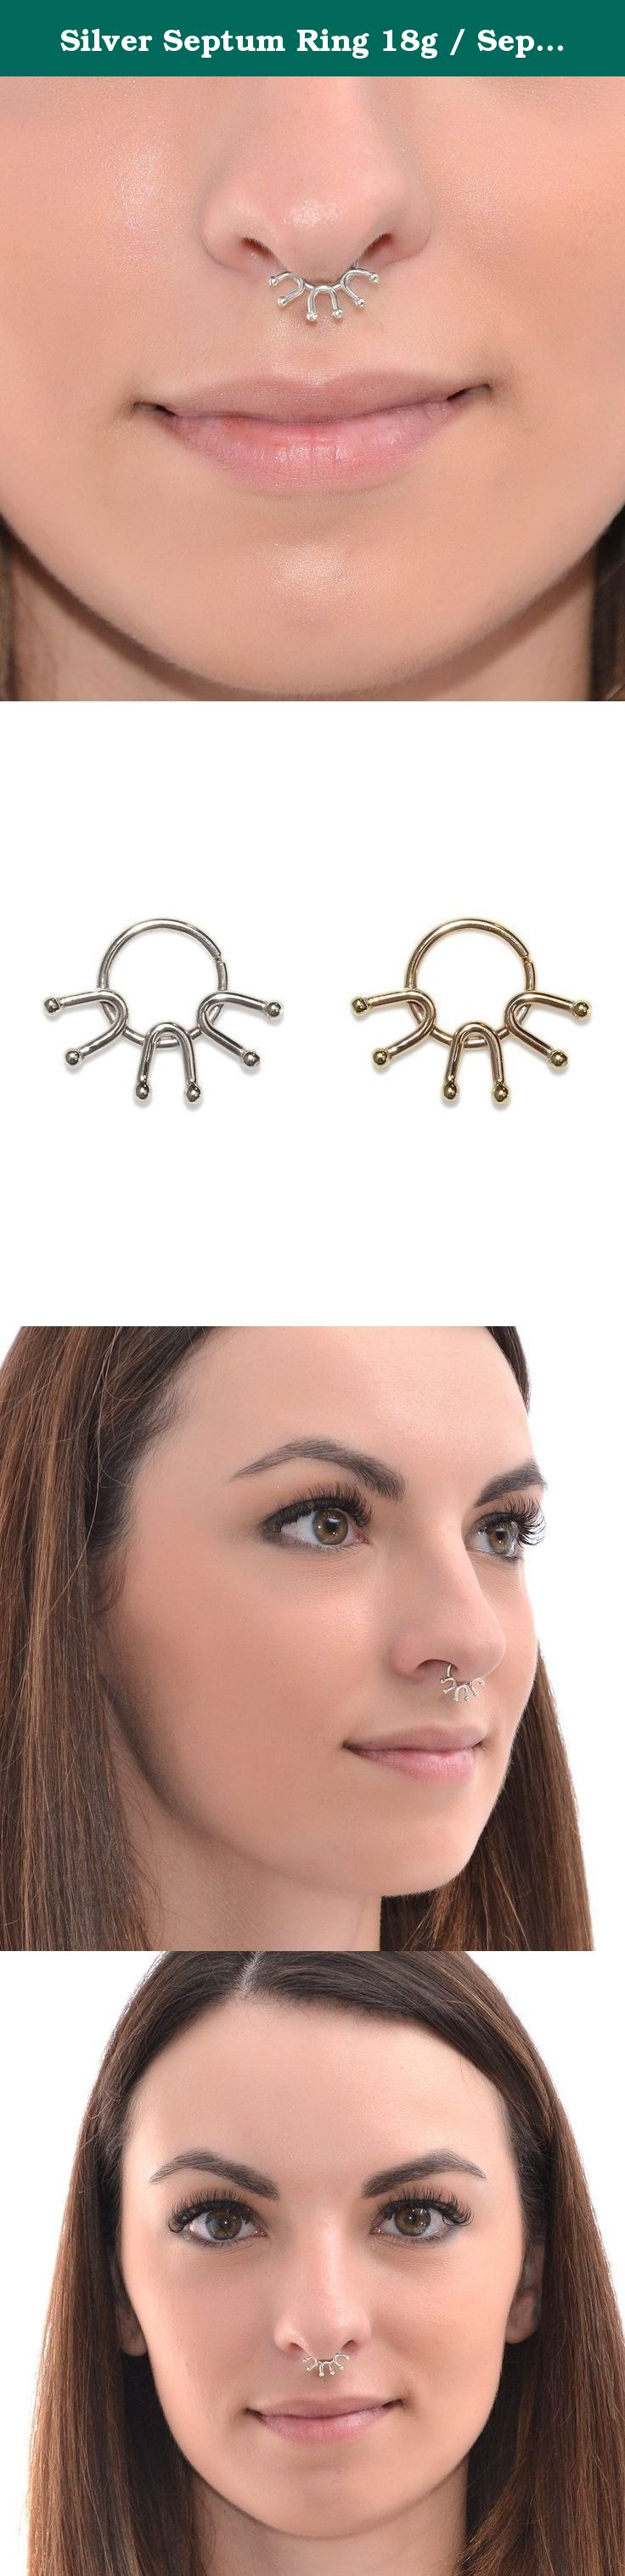 Piercing your nose  Silver Septum Ring g  Septum Piercing Nipple Ring This is a